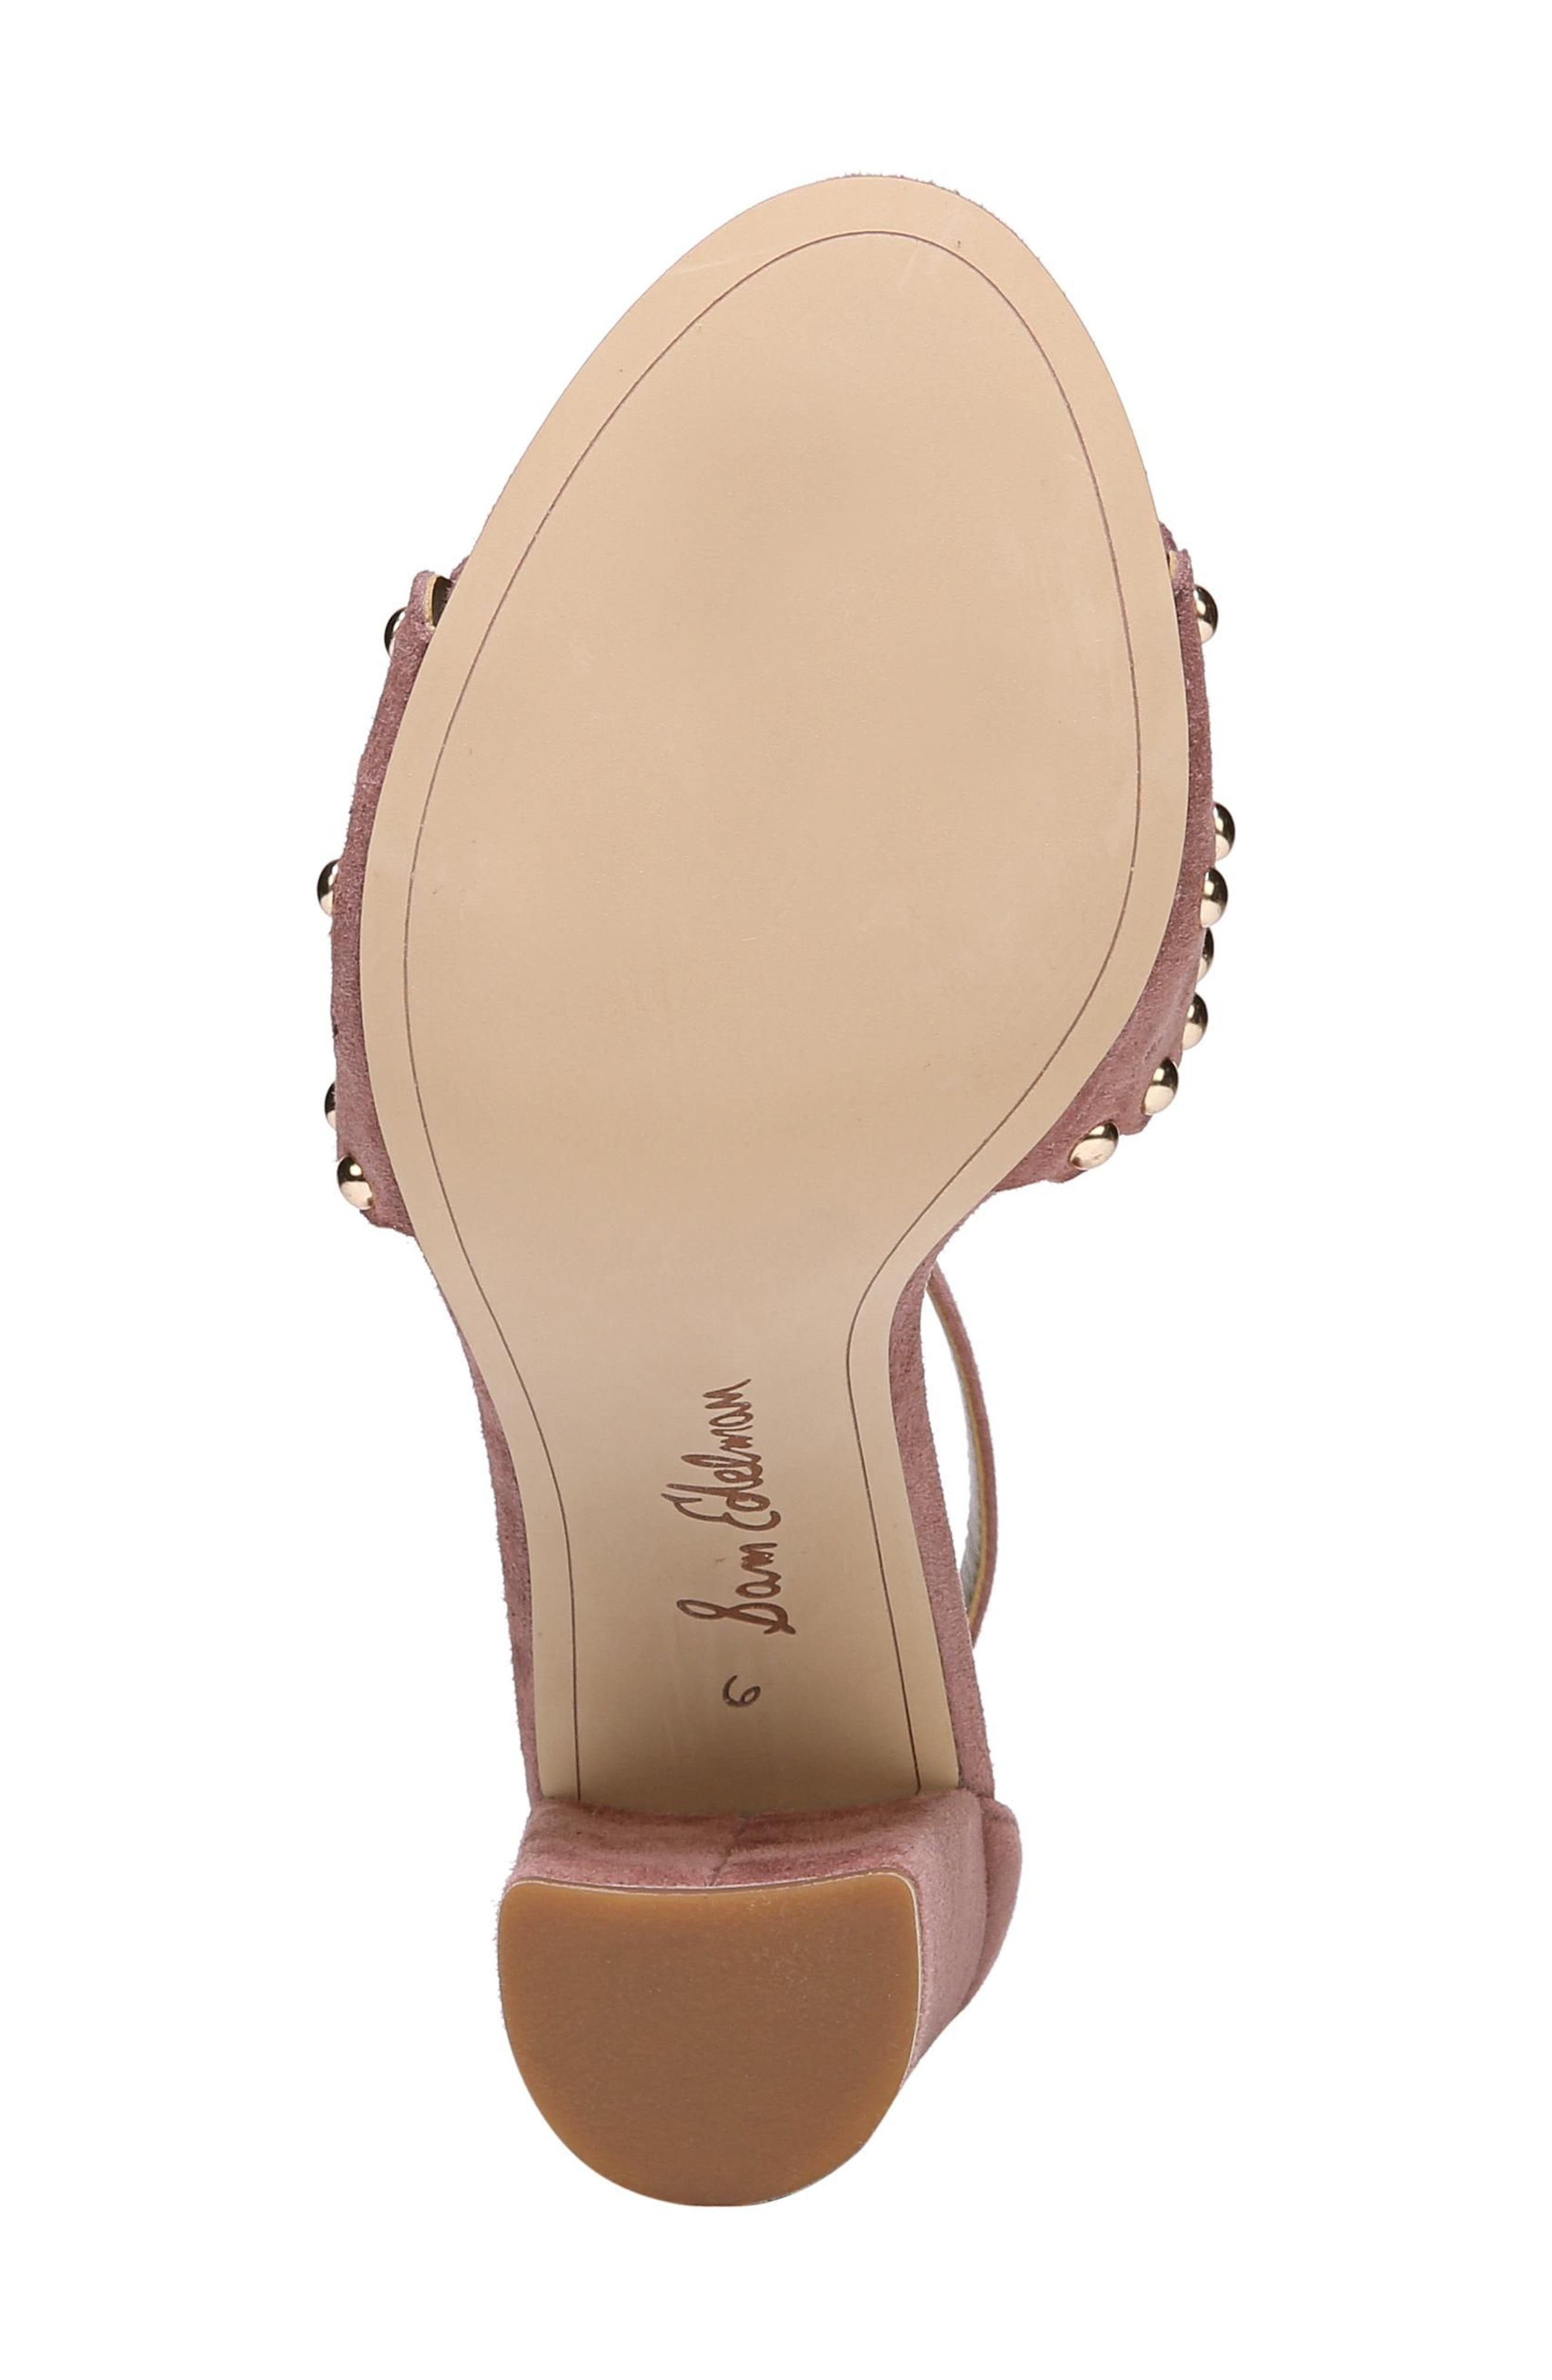 Yaria Studded Block Heel Sandal,                             Alternate thumbnail 6, color,                             Dusty Rose Suede